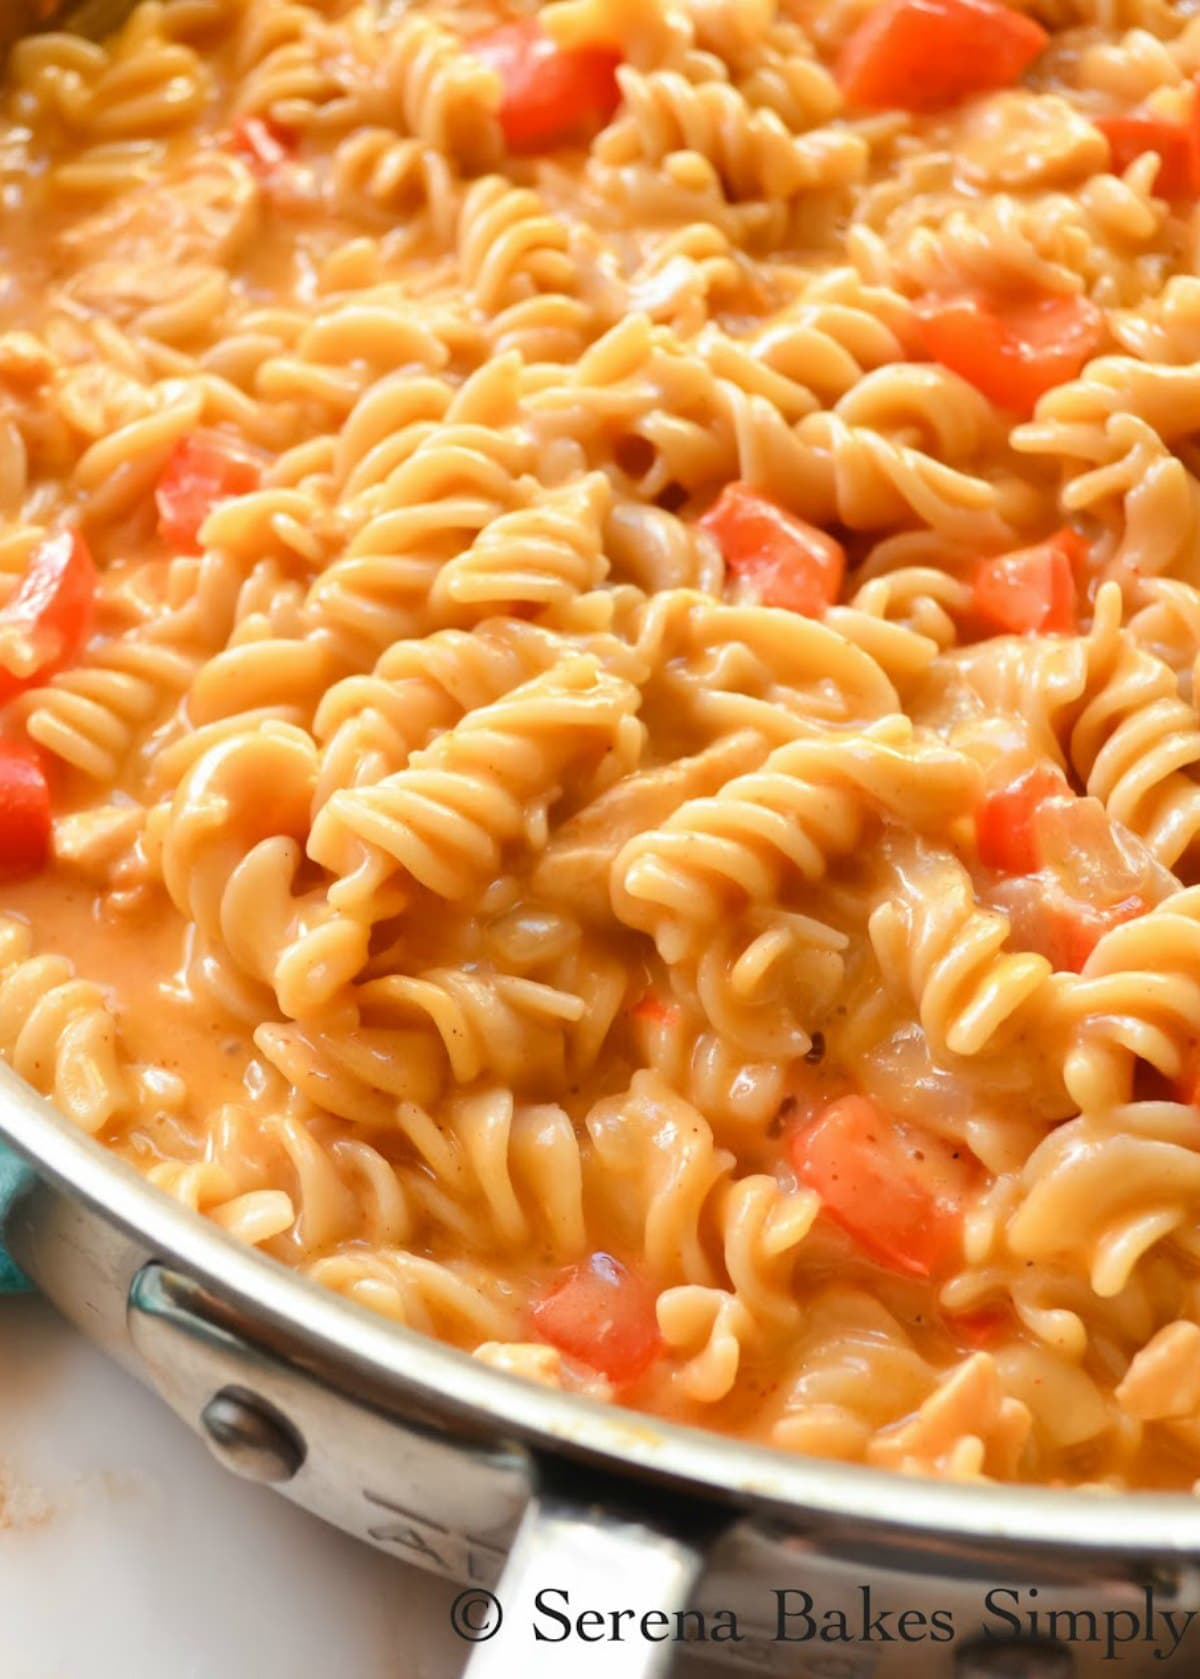 Chicken Macaroni and Cheese Helper in a stainless steel pan.